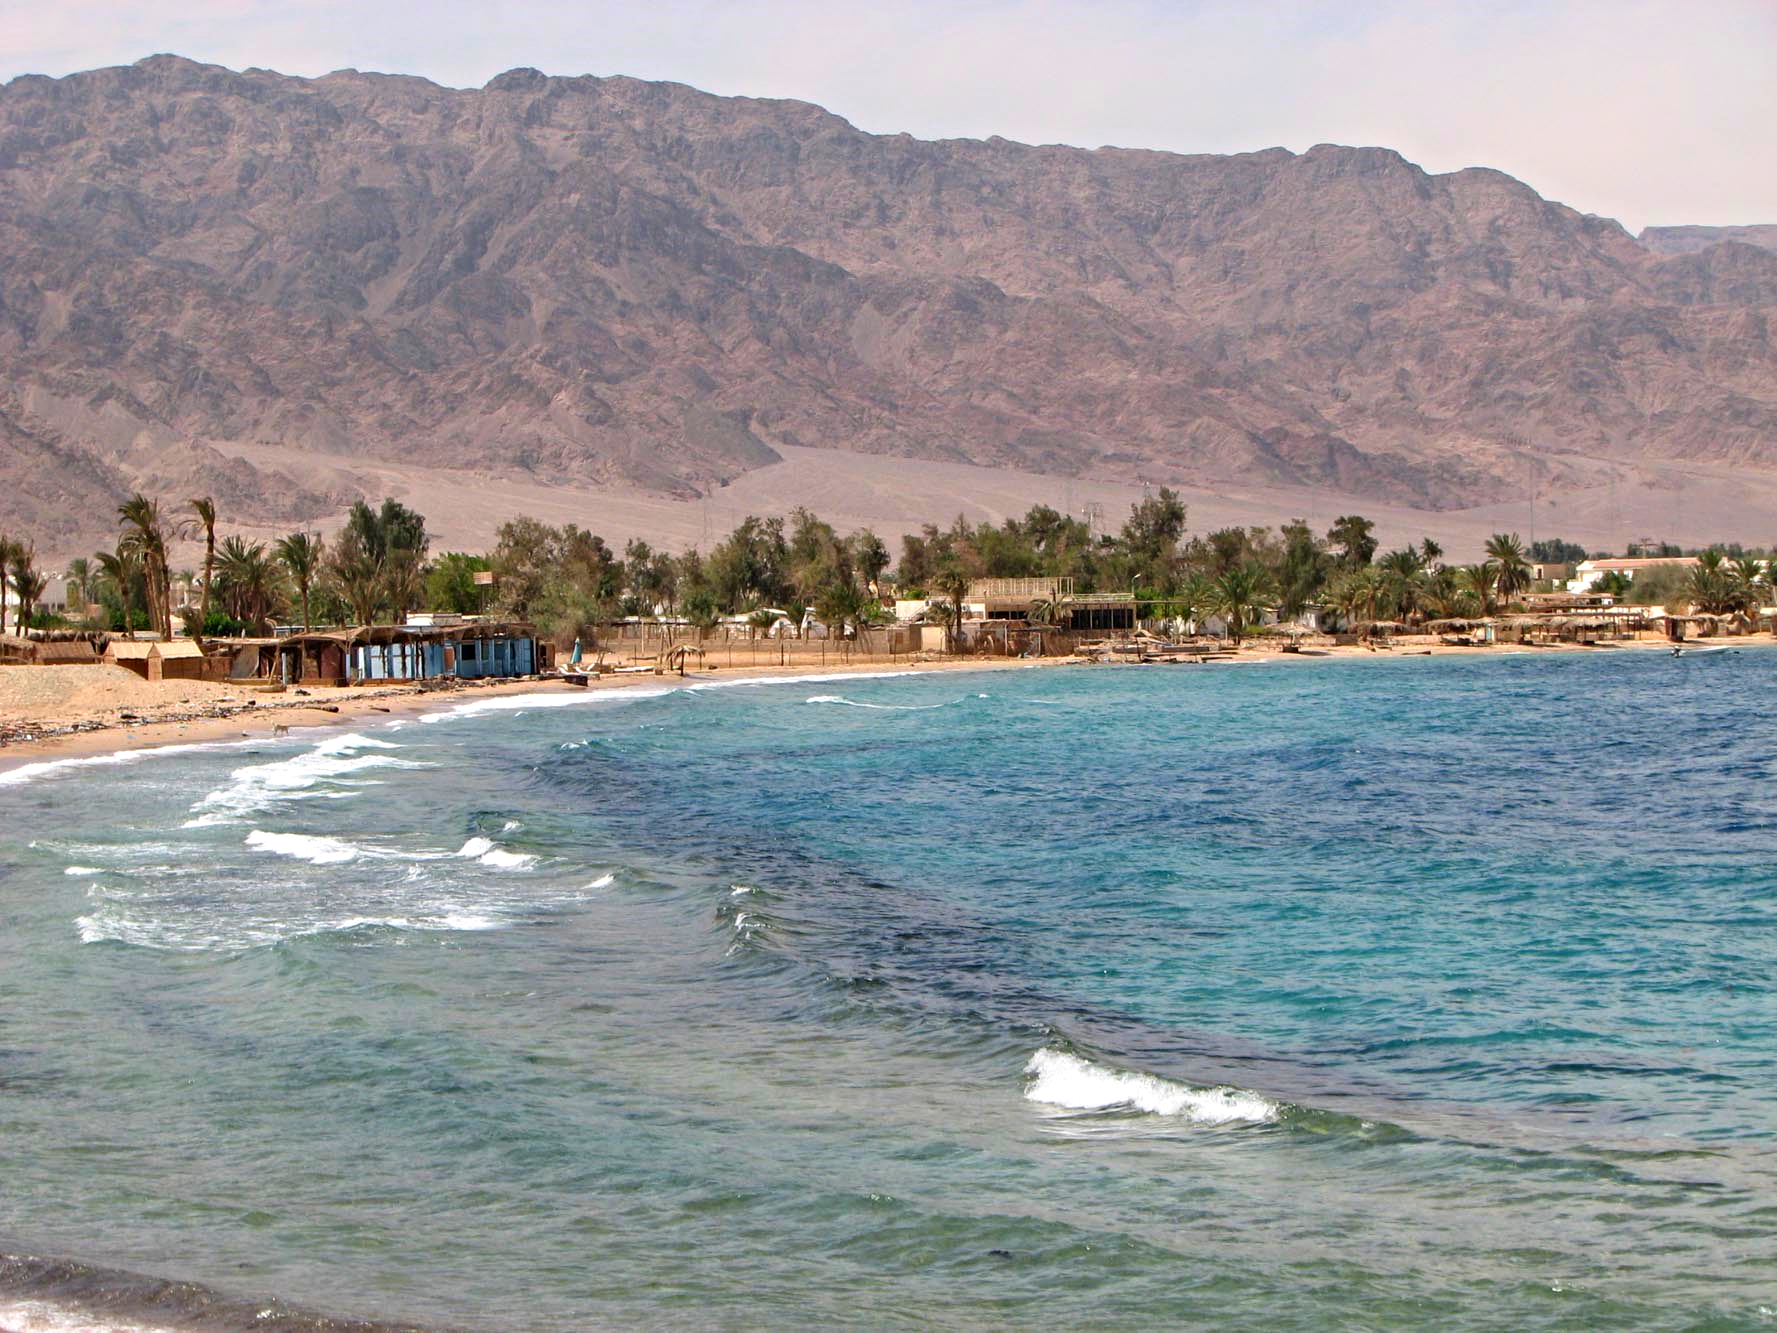 Nuweiba, near to the town